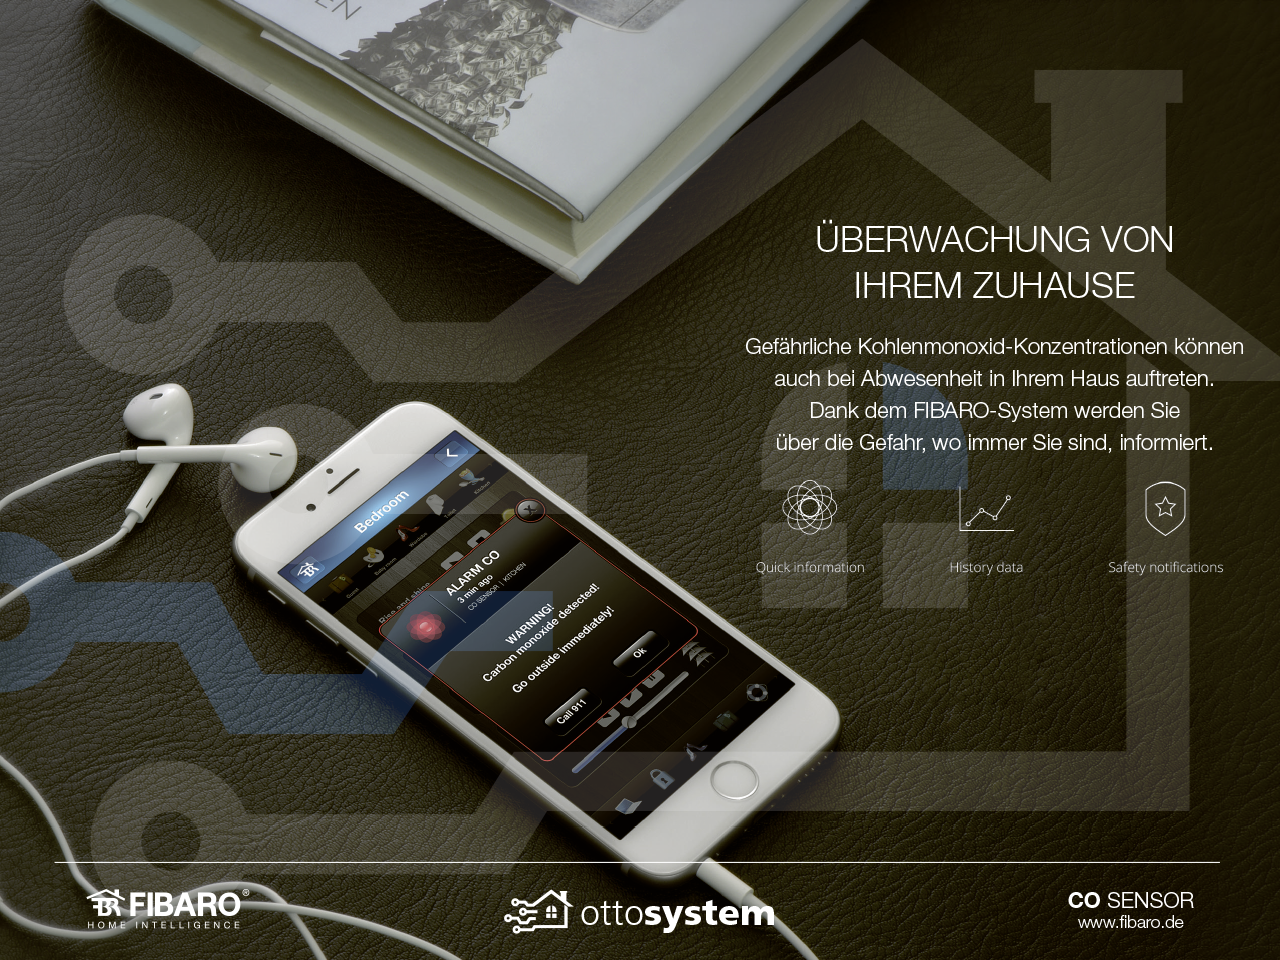 Pr-sentation_FIBARO_CO-Sensor_ottosystem-8